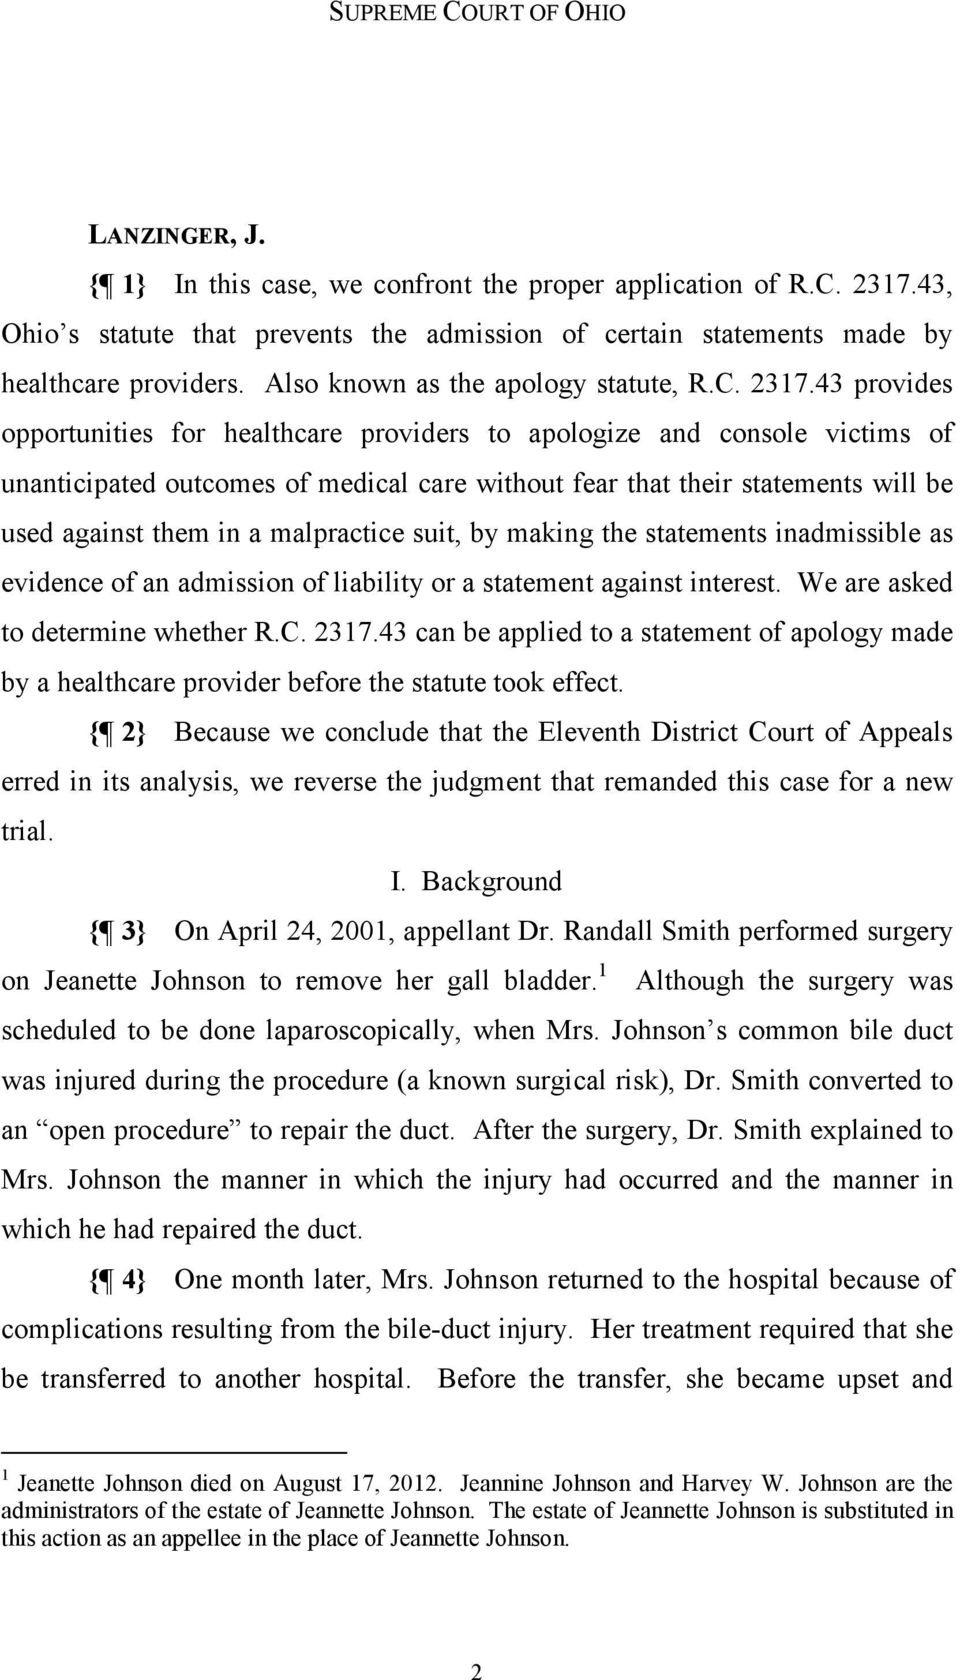 43 provides opportunities for healthcare providers to apologize and console victims of unanticipated outcomes of medical care without fear that their statements will be used against them in a